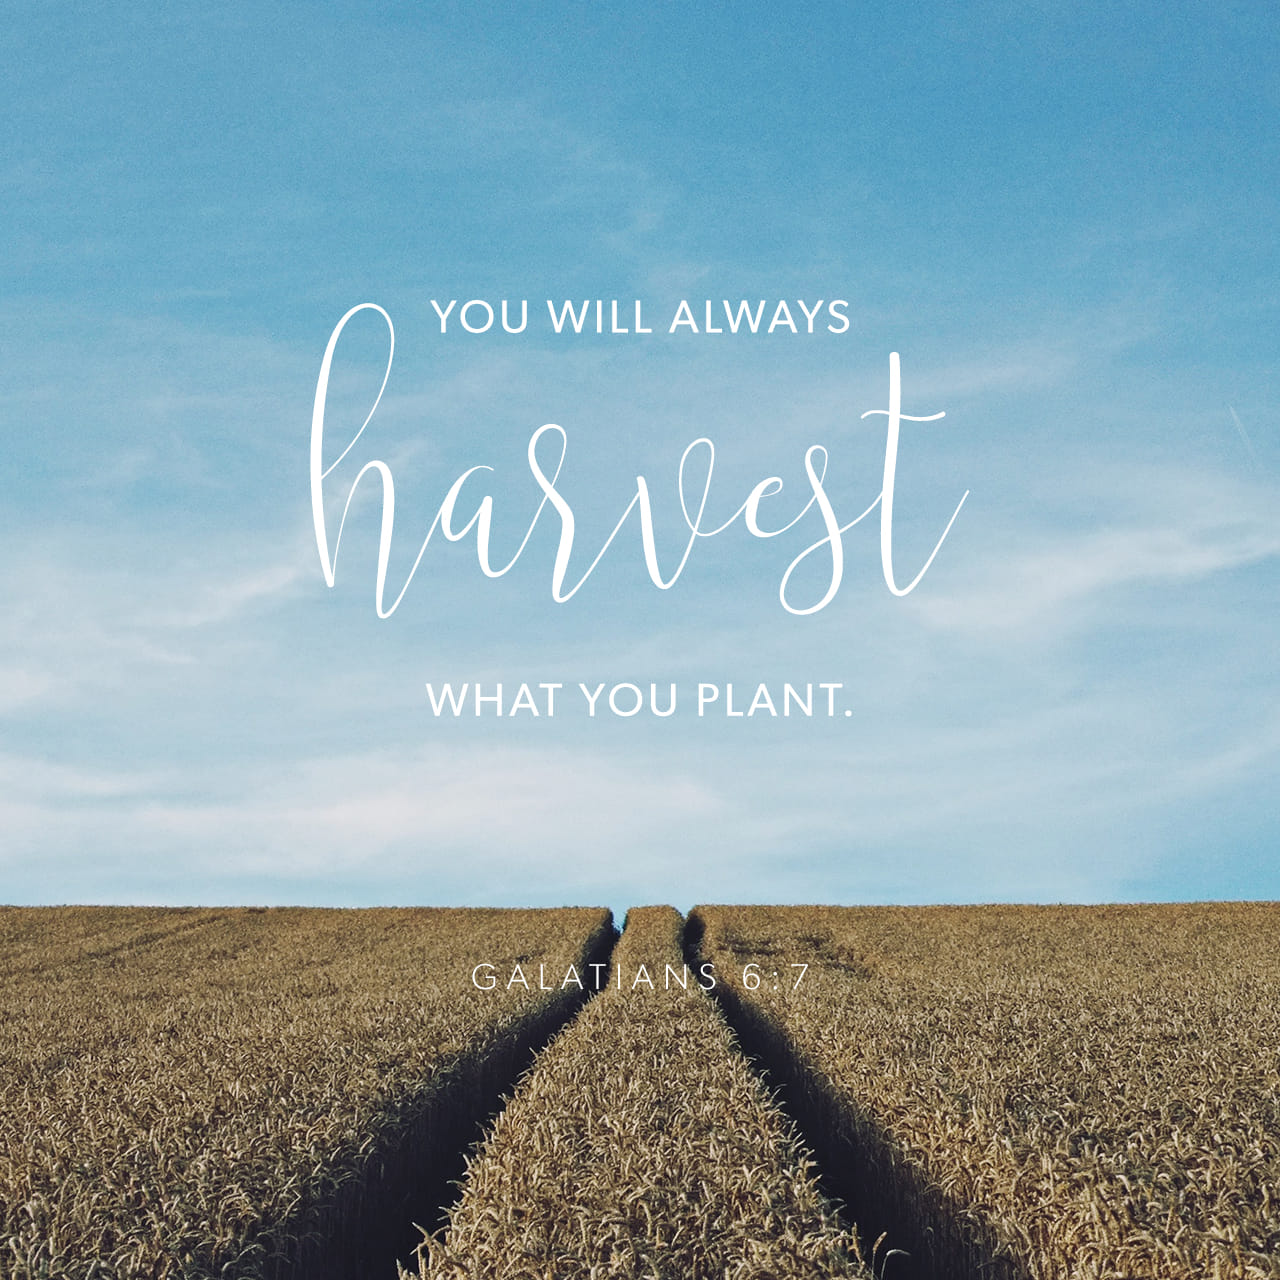 Galatians 6:7-8 Be not deceived; God is not mocked: for whatsoever a man soweth, that shall he also reap. For he that soweth to his flesh shall of the flesh reap corruption; but he that soweth to the Spirit shall of | King James Version (KJV)